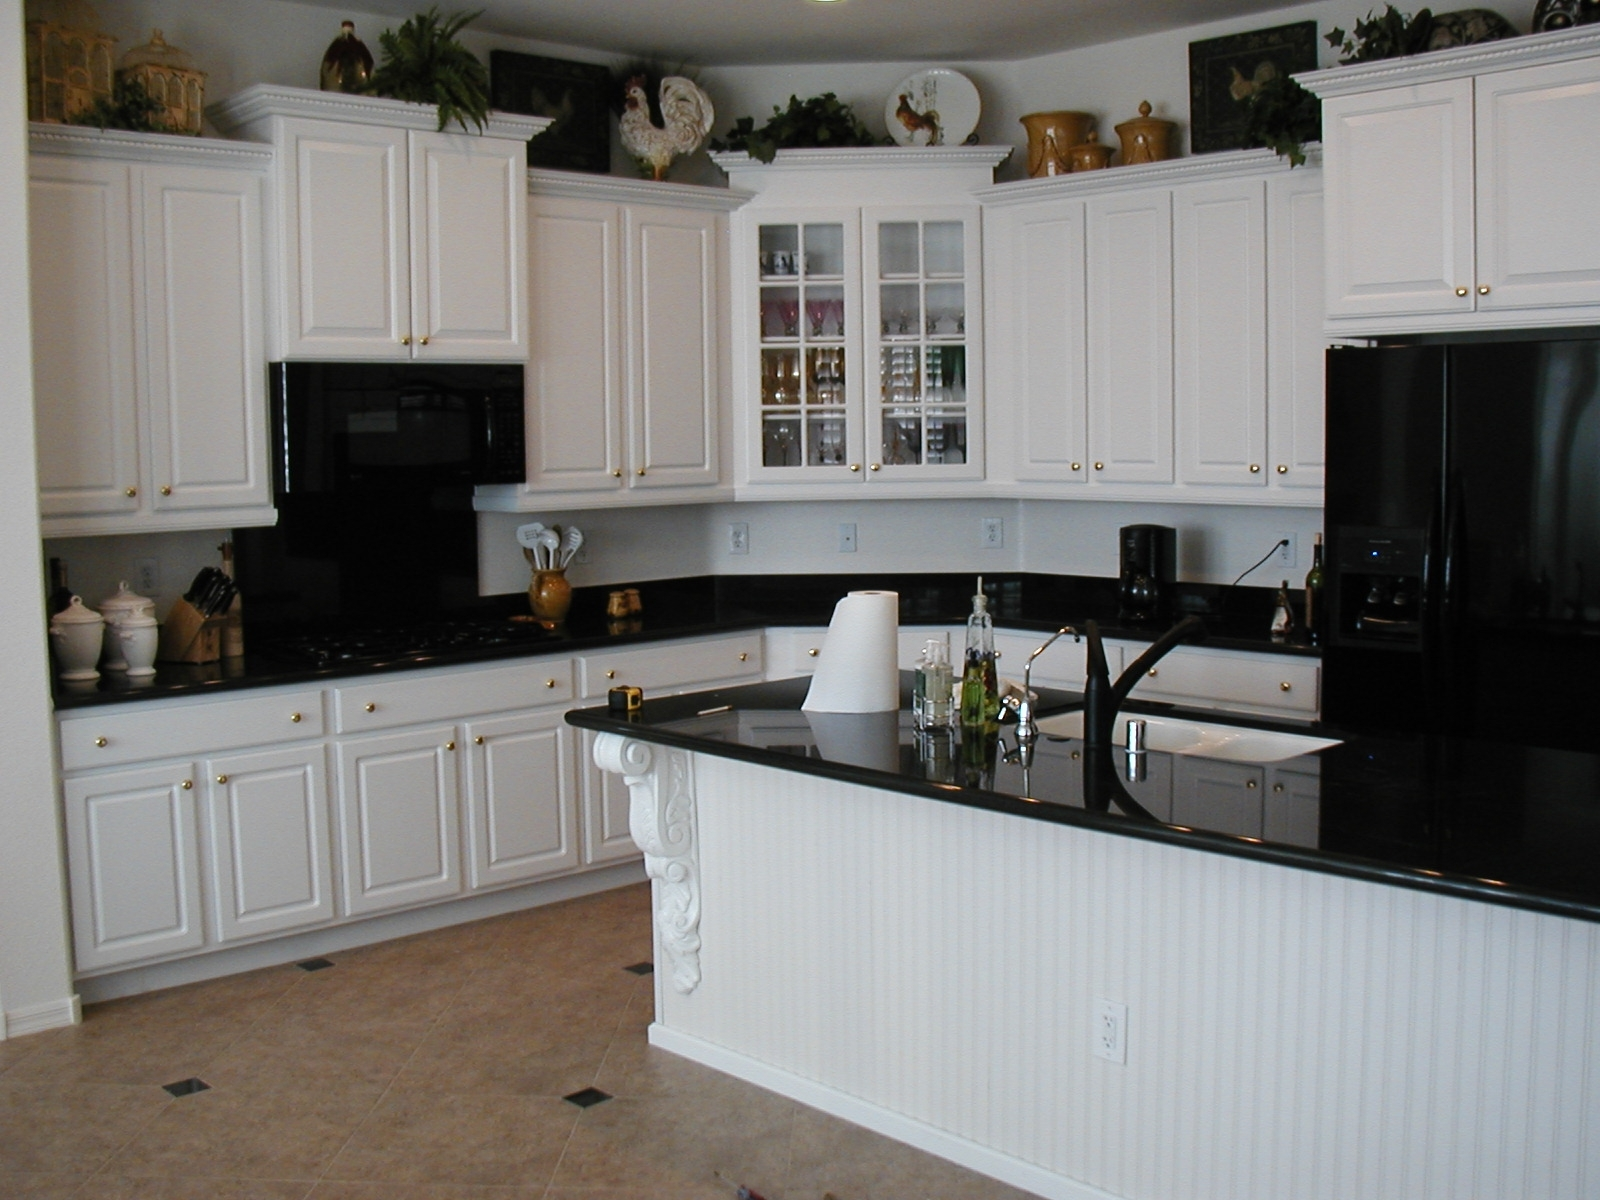 Black Kitchen Countertops With White Cabinets